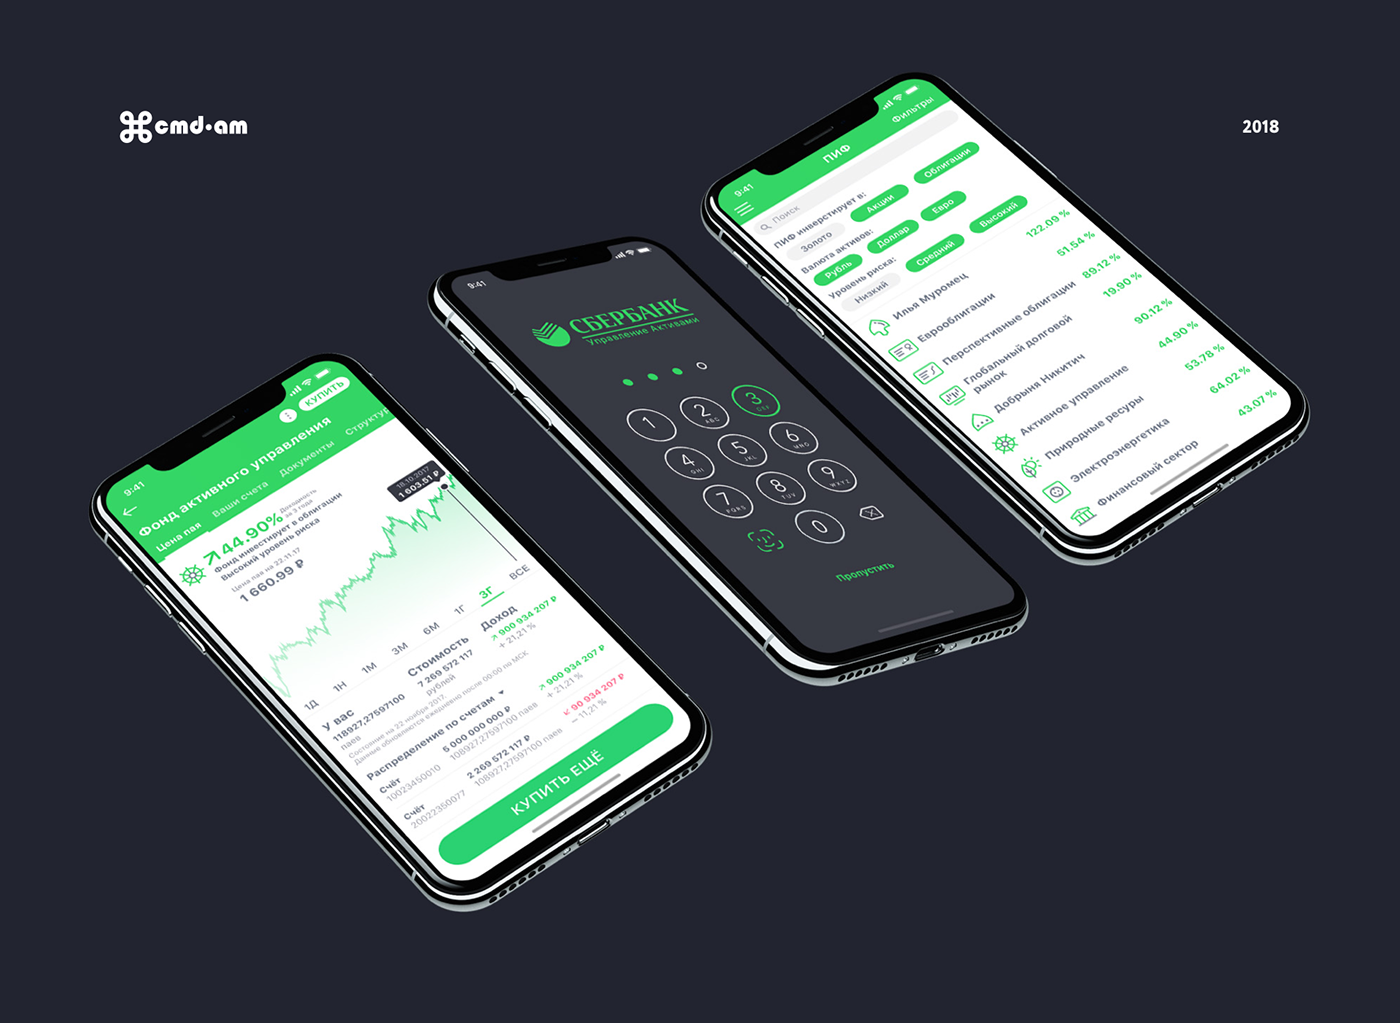 Bank Investments ETF Сбербанк ios android application UI ux product design